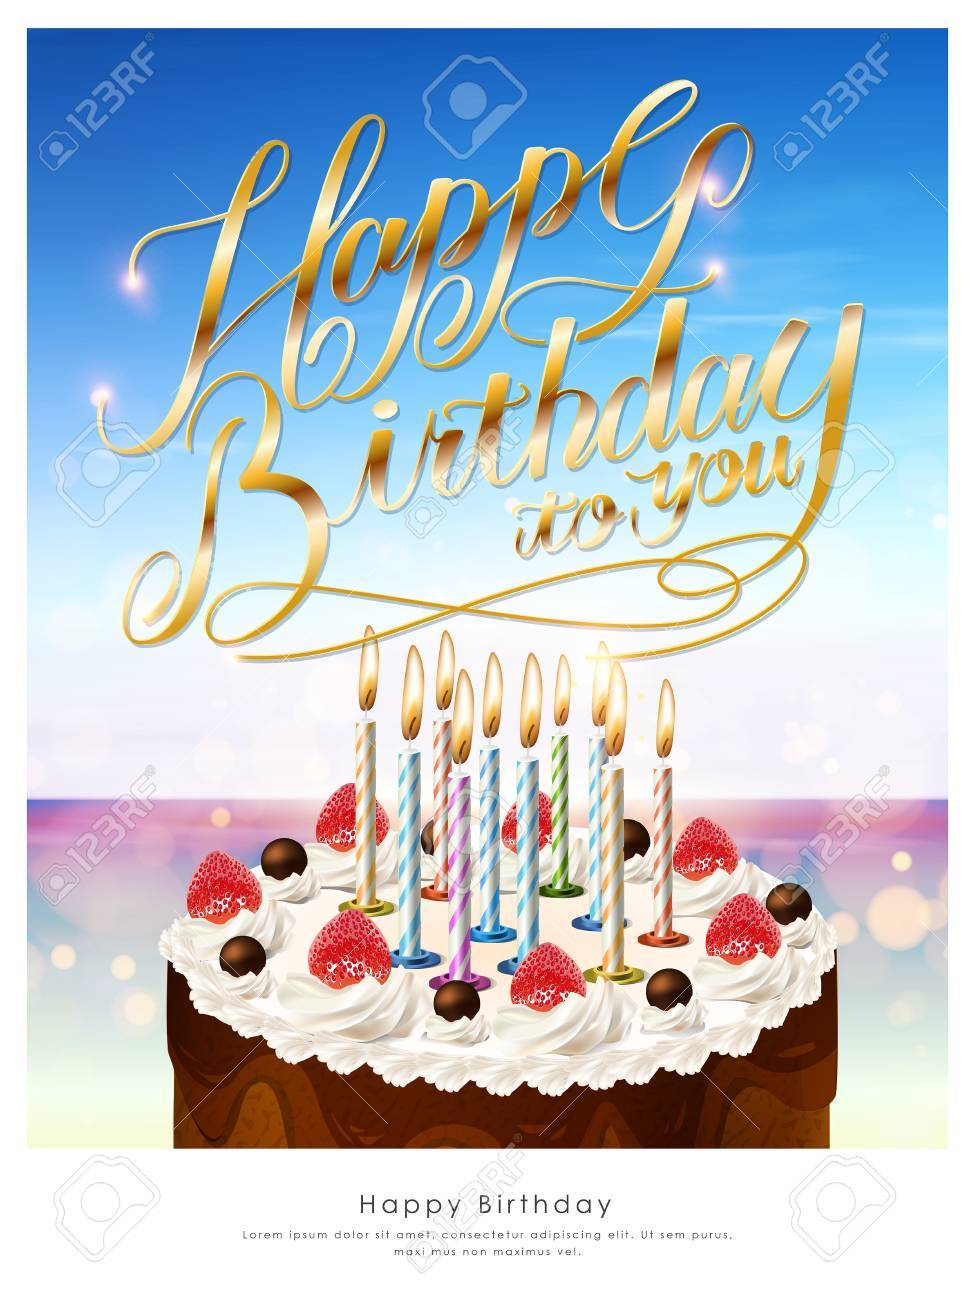 birthday poster template ; 55912063-happy-birthday-poster-template-design-with-delicious-cake